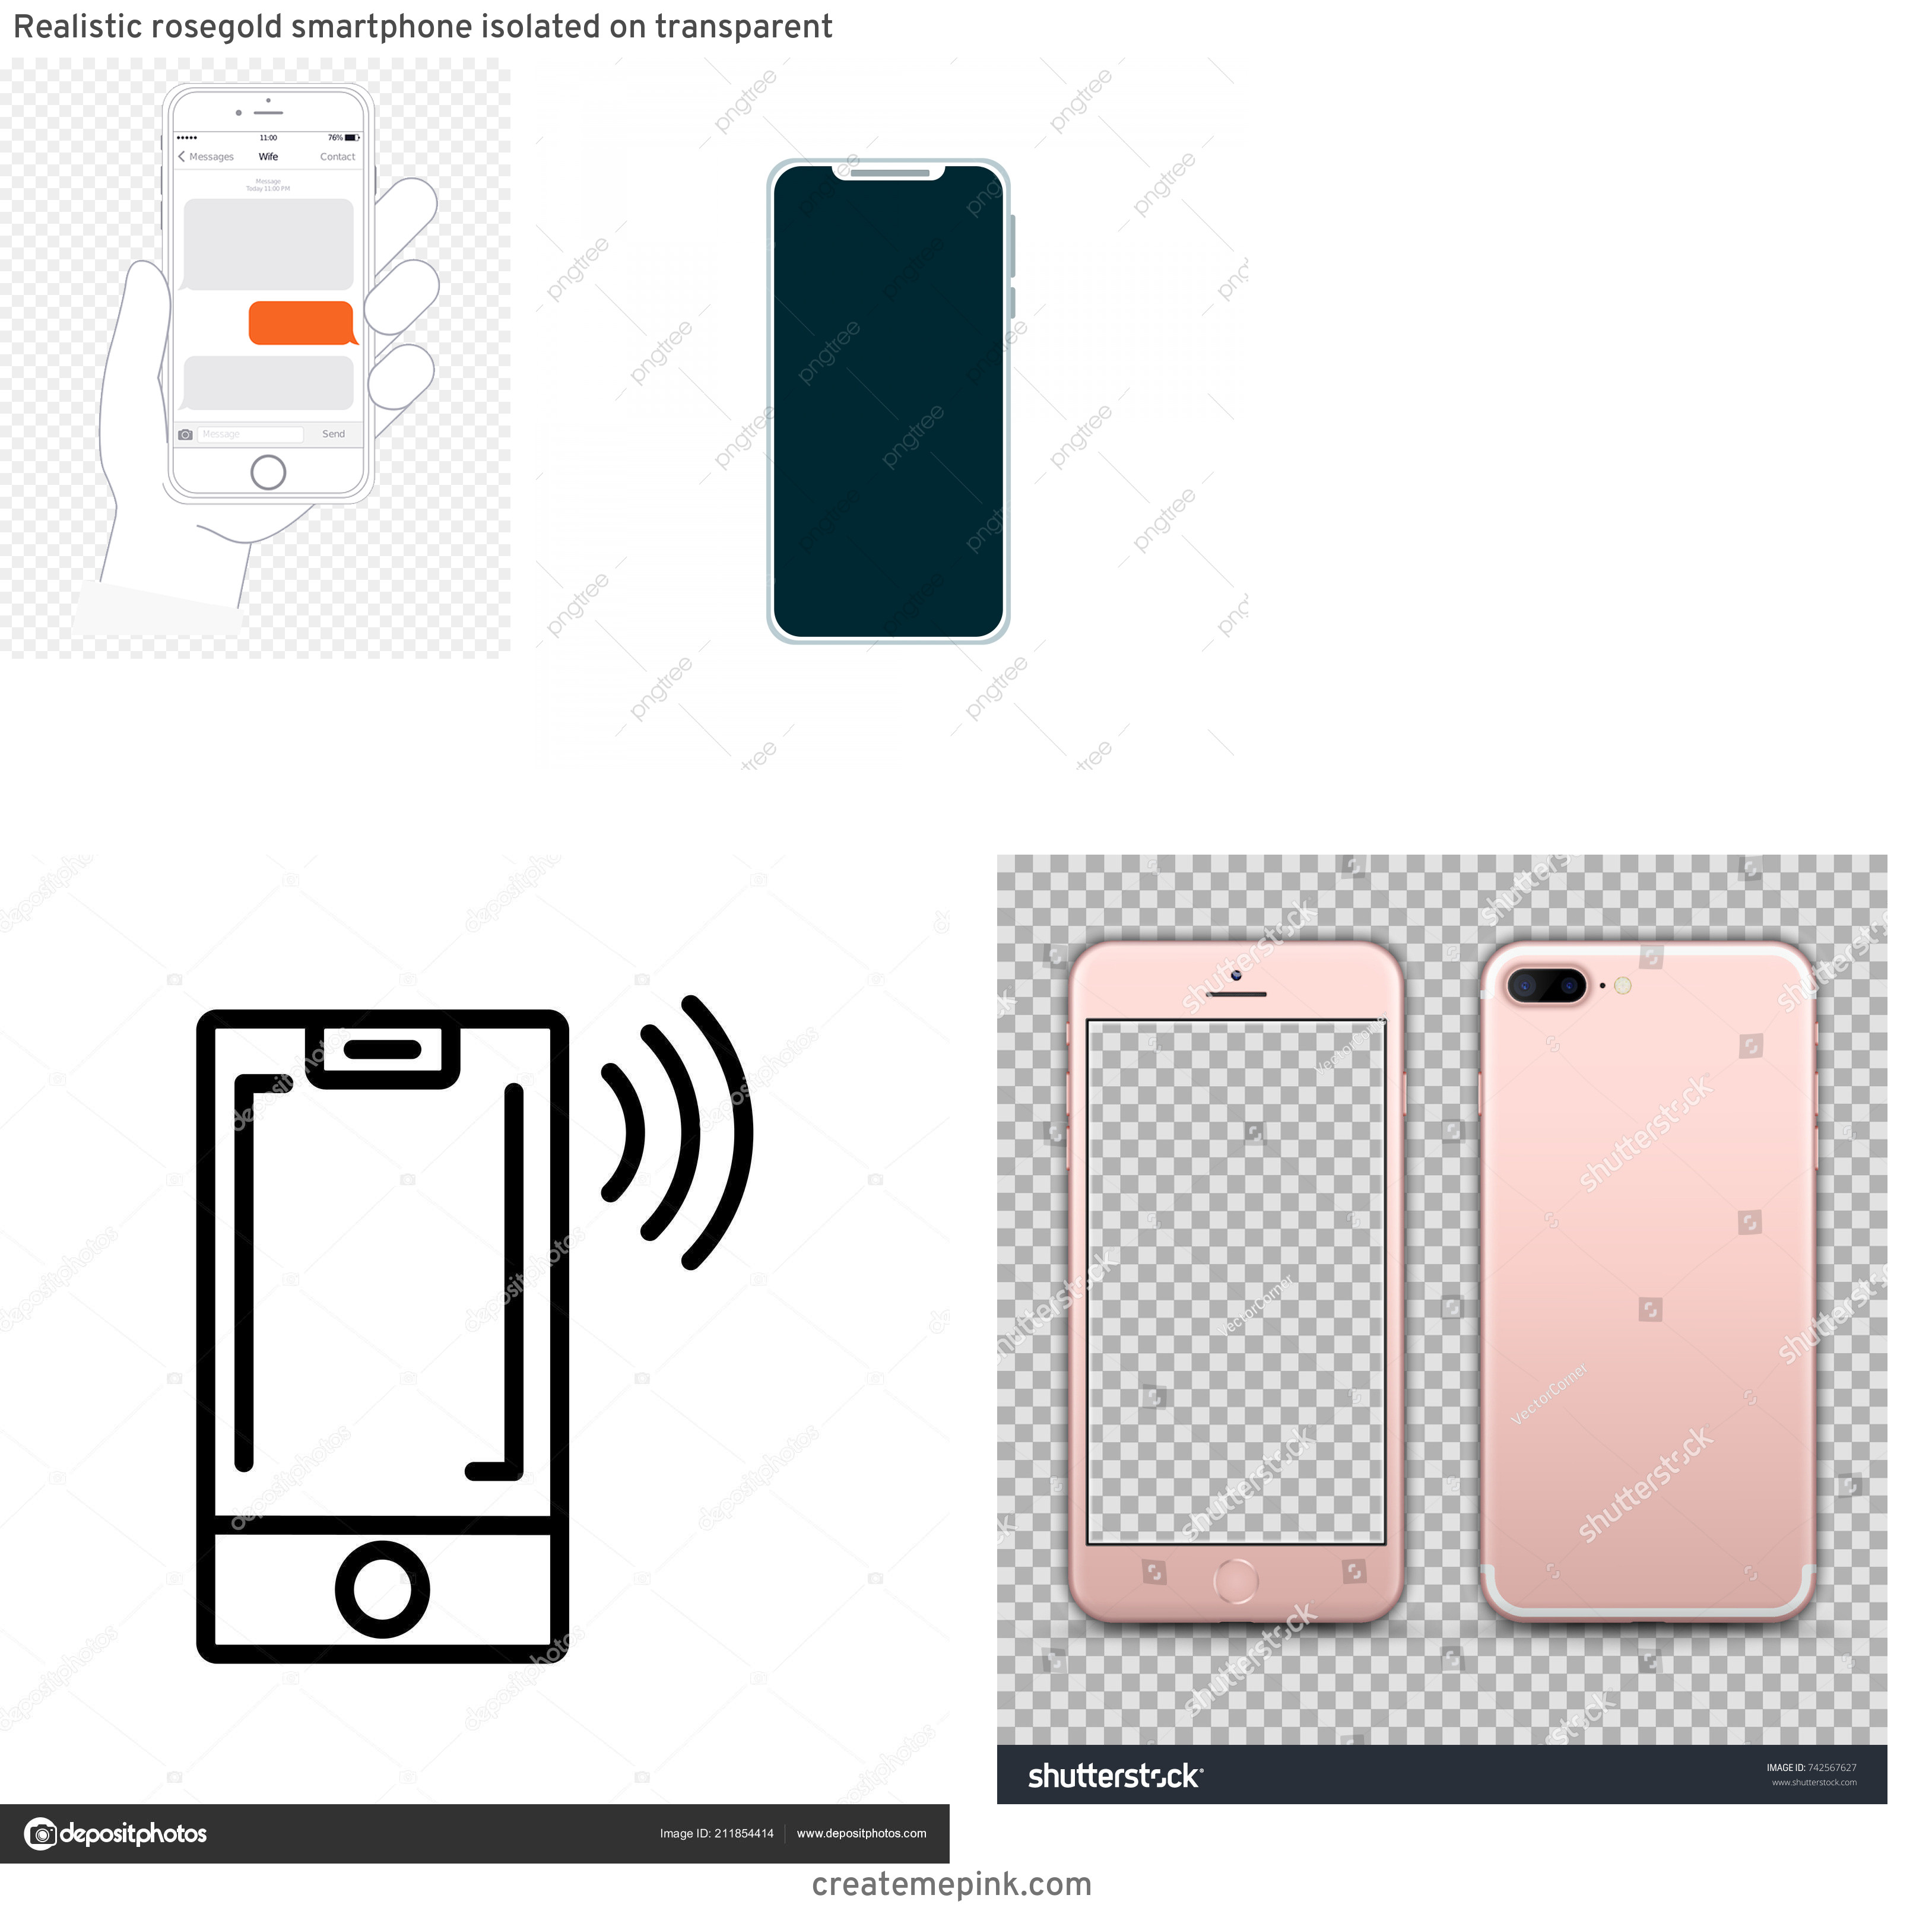 IPhone Vector Transparent Background: Realistic Rosegold Smartphone Isolated On Transparent